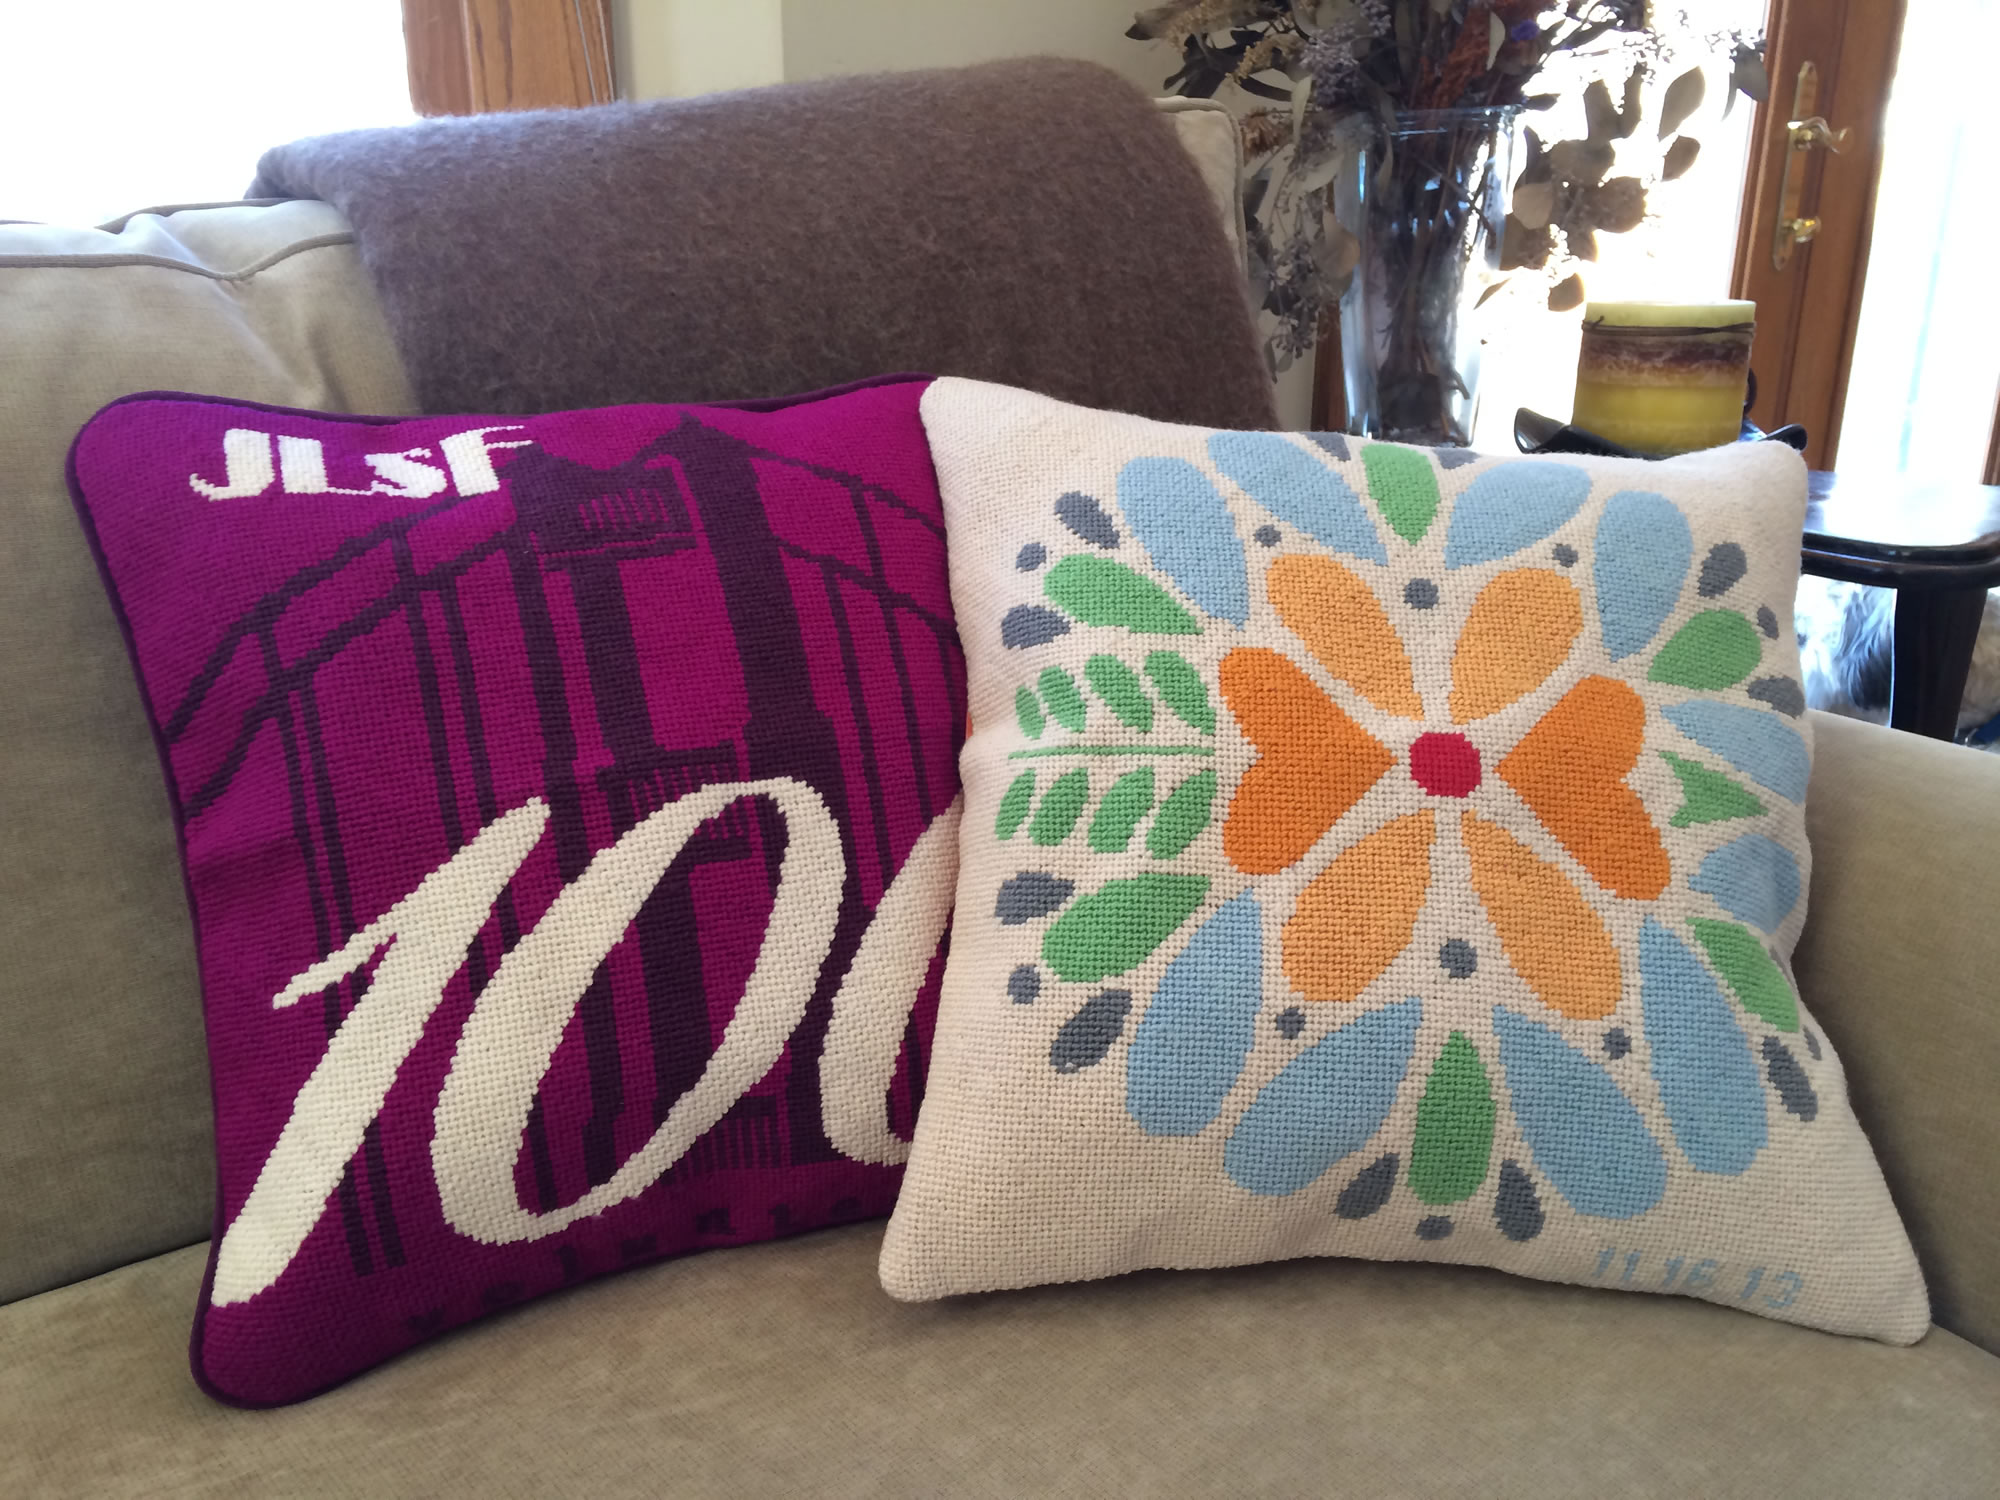 pillow pic lane f mercy burgundy pillows bouquet pair maude wool vintage needlepoint item ruby